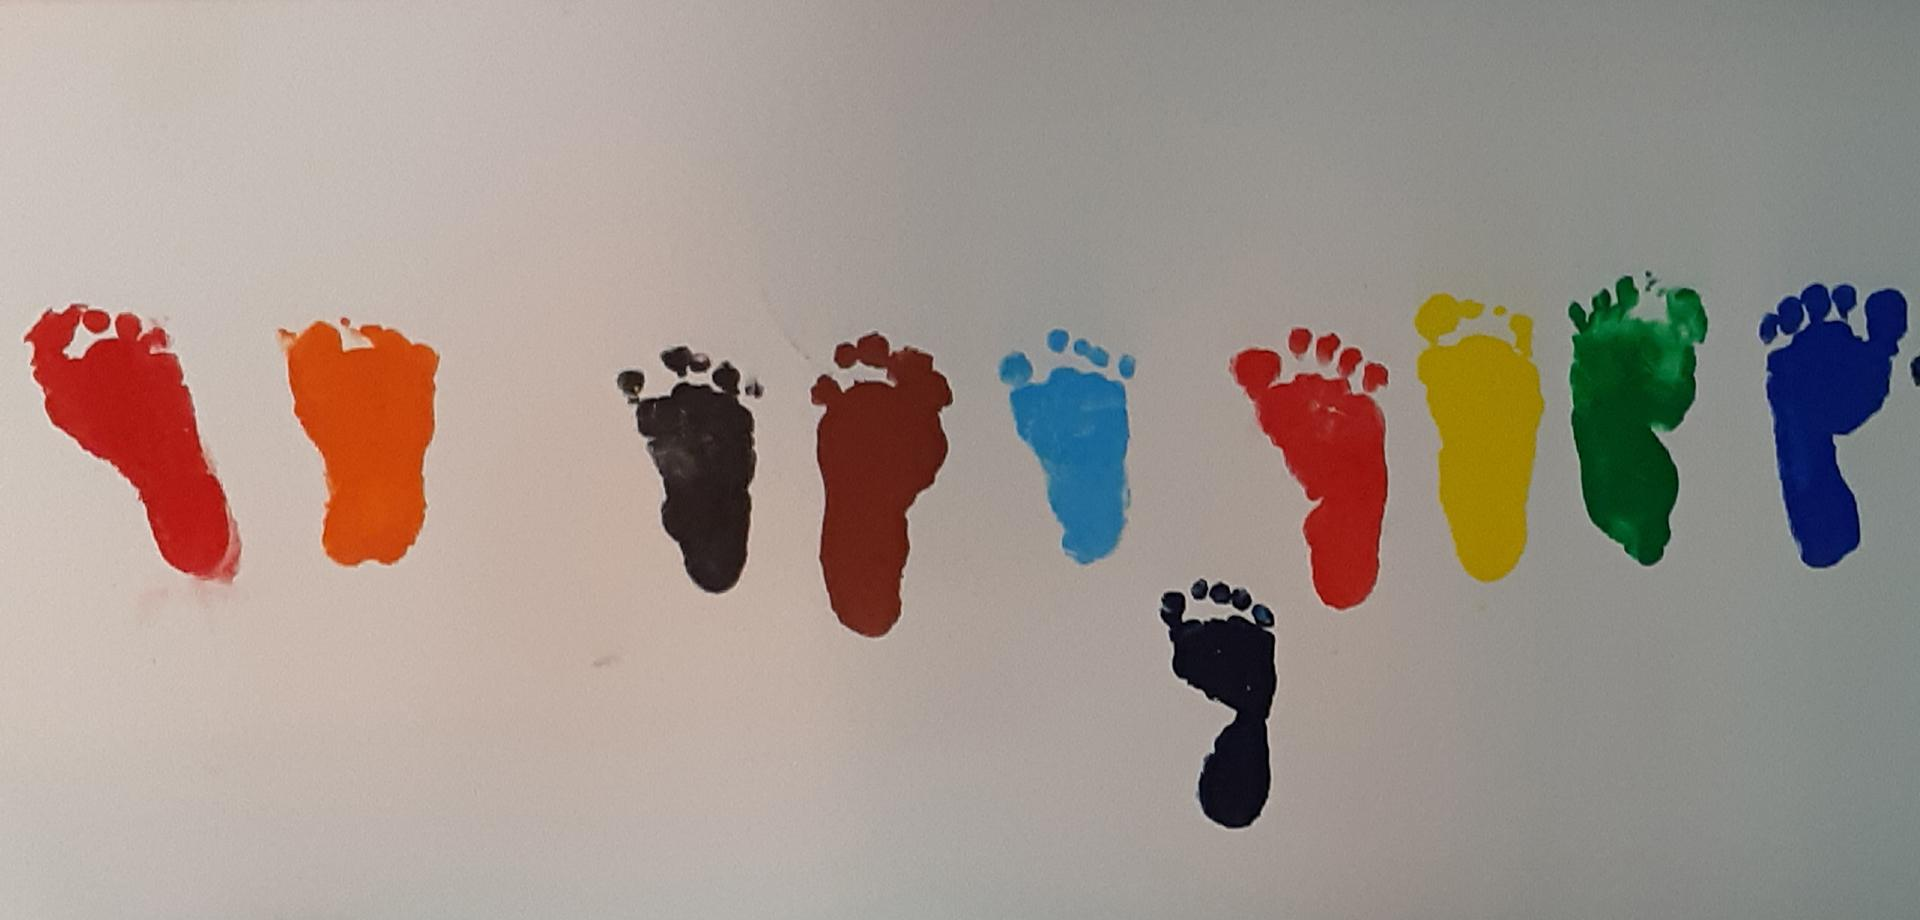 Footprints from children treated at Goyalmara hospital in Bangladesh